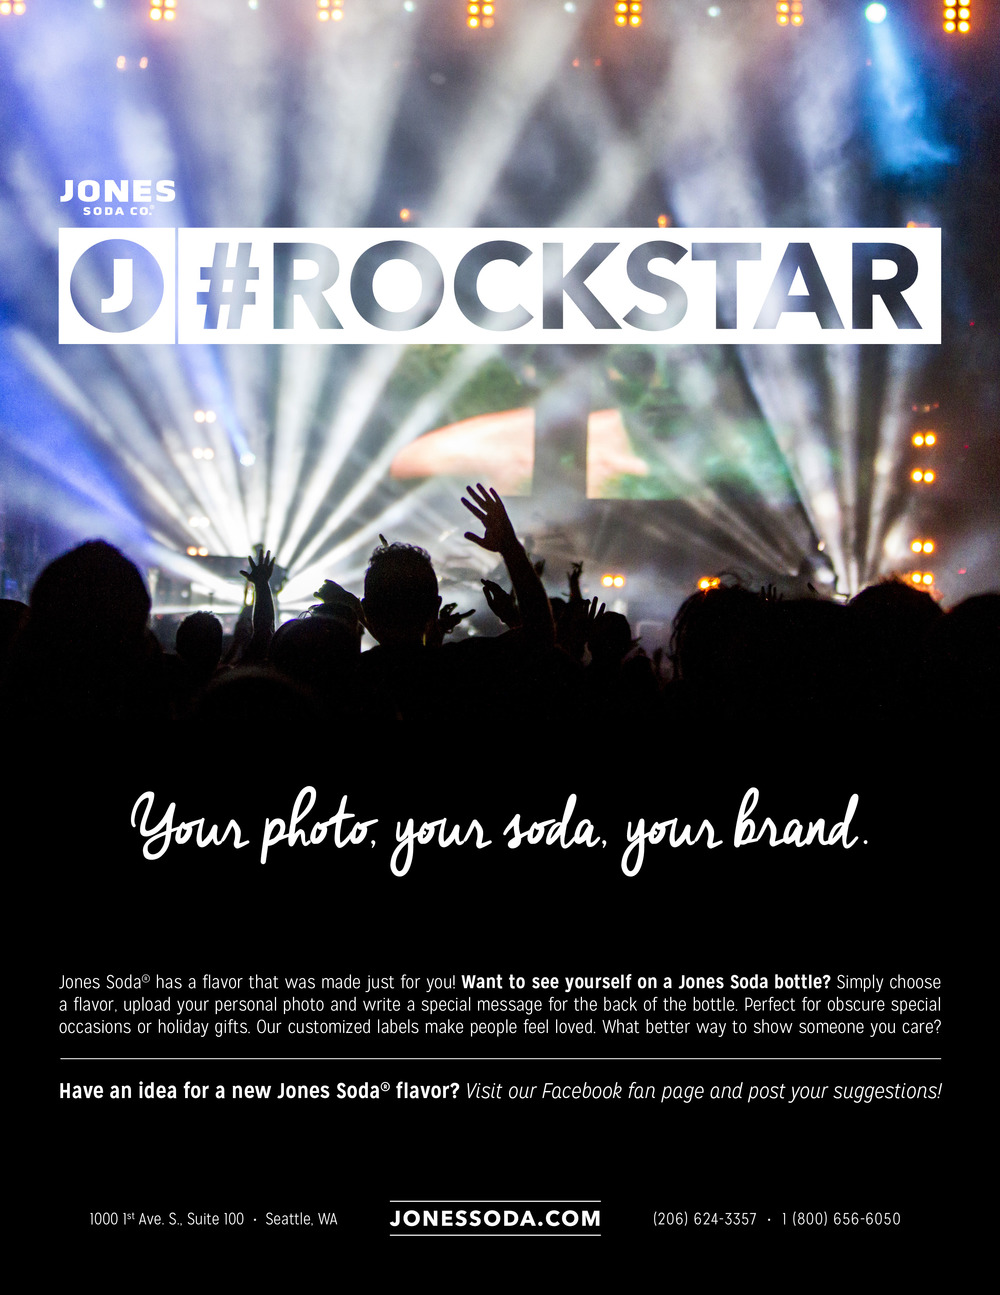 Jones_Magazine Ad_Rockstar_web.jpg